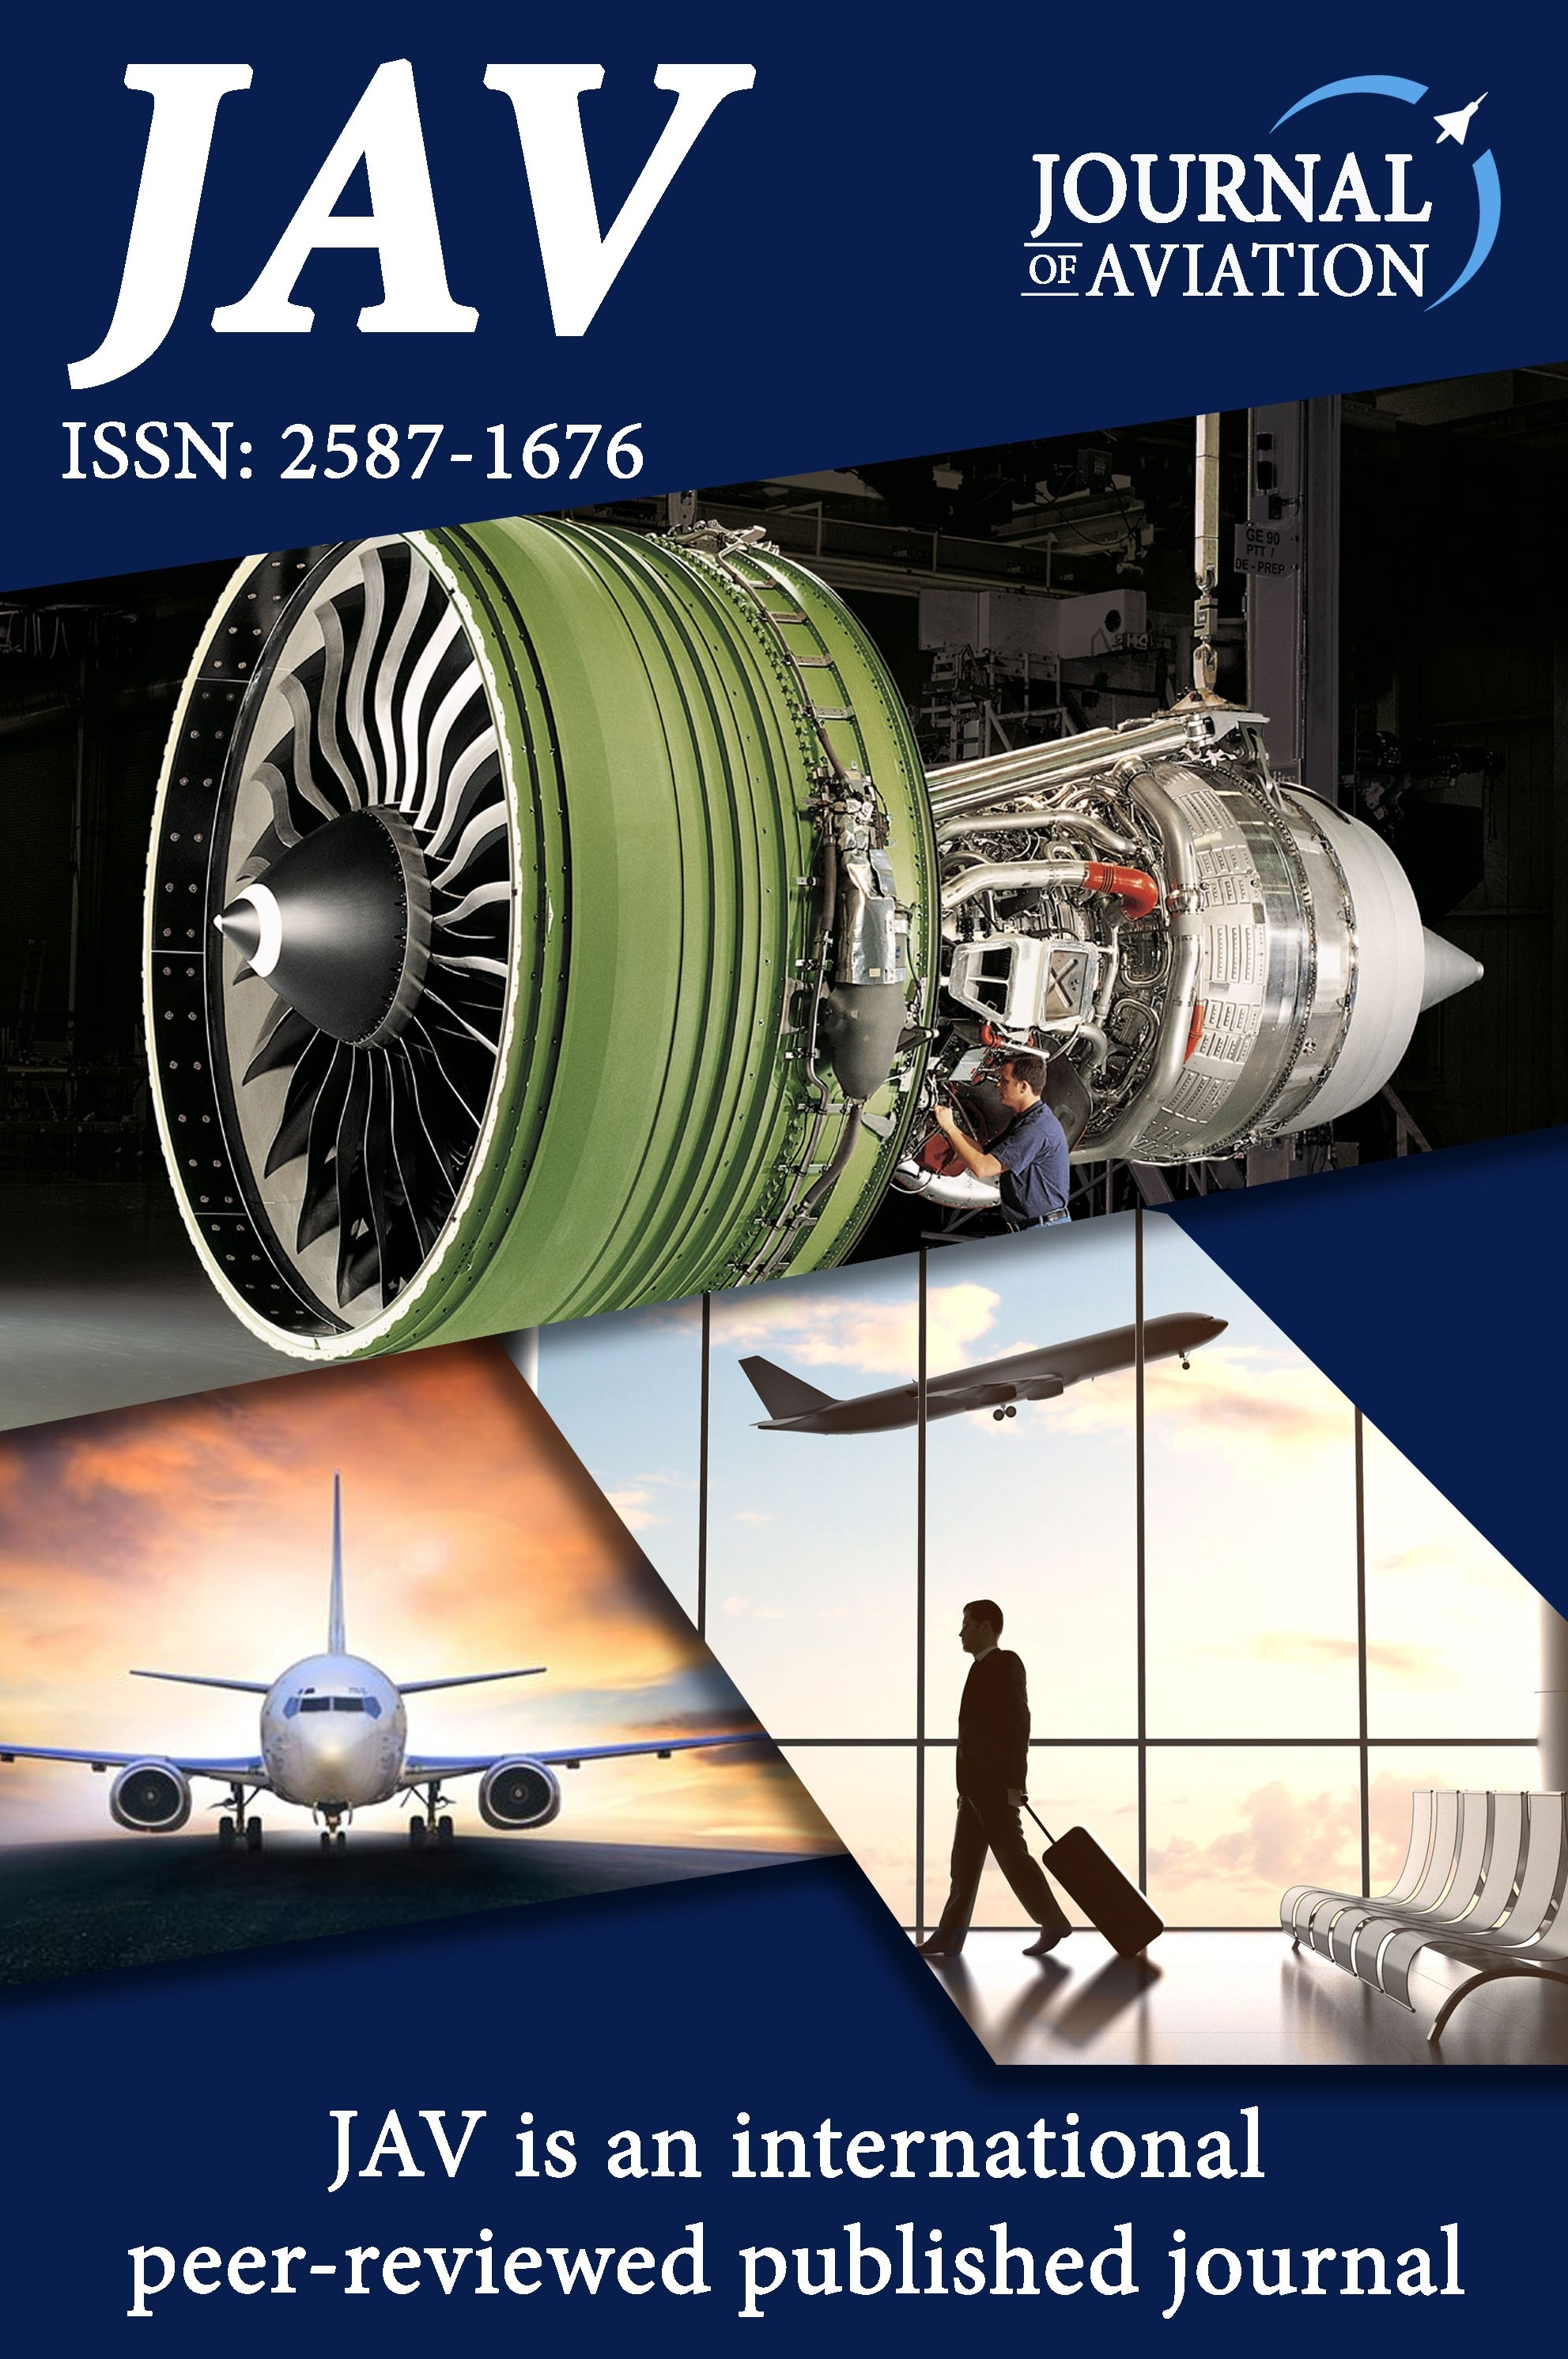 Journal of Aviation